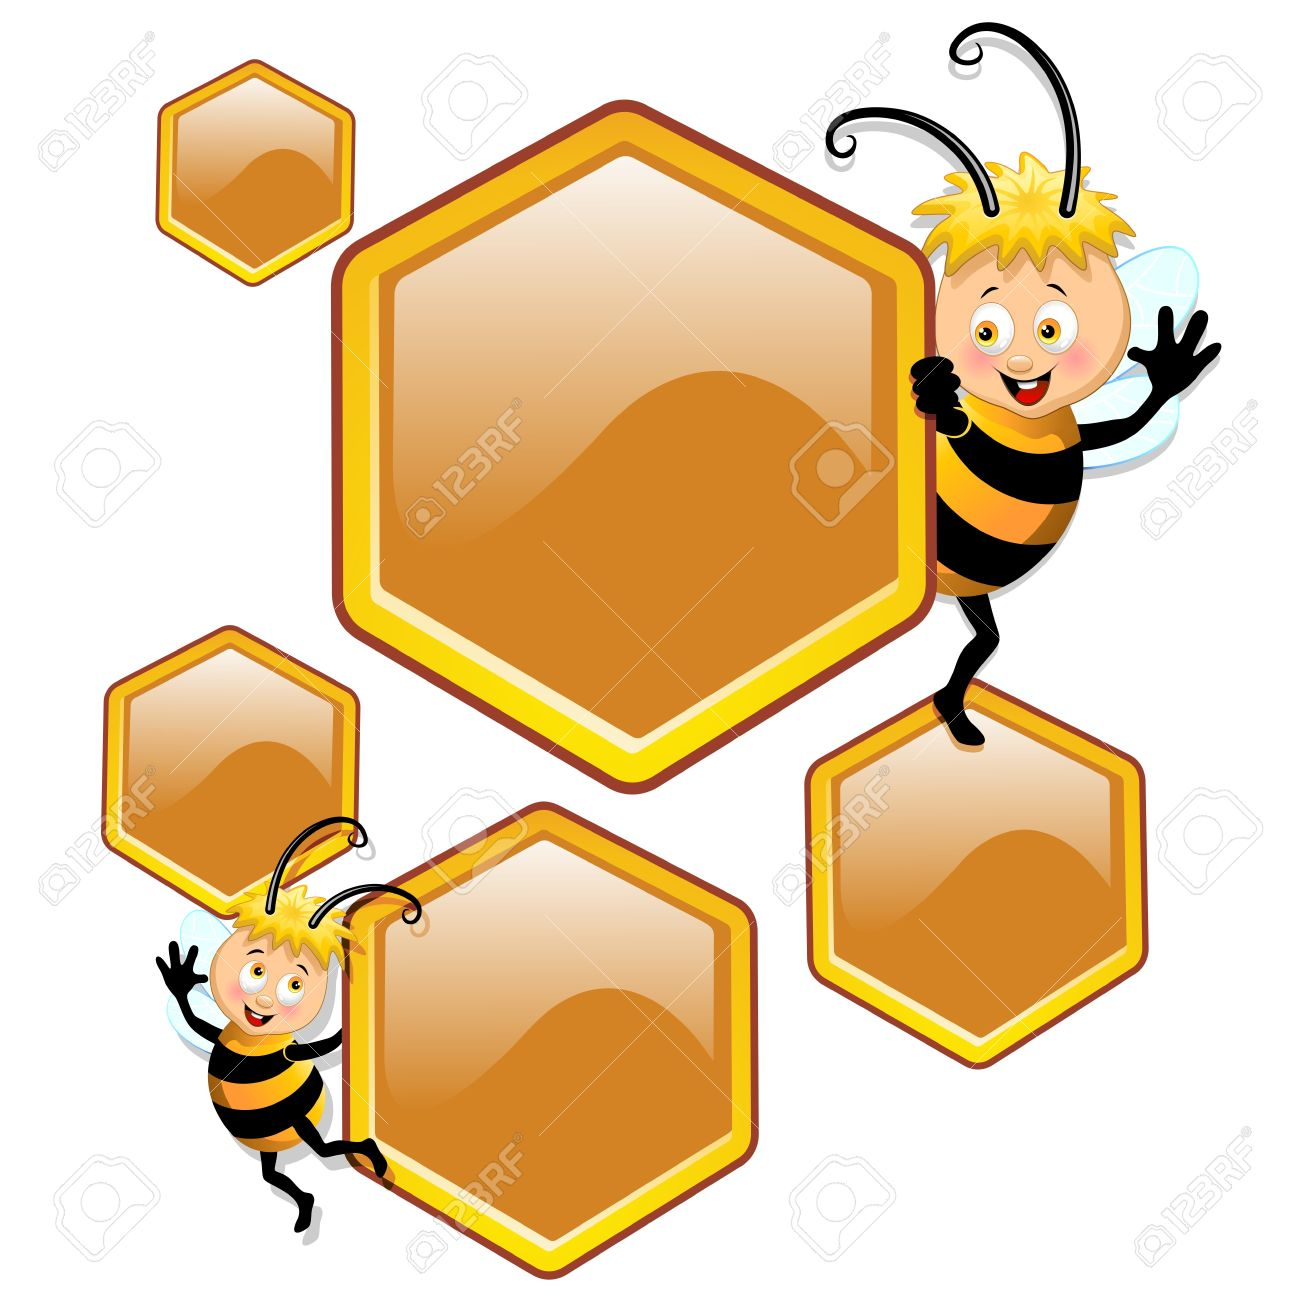 Bee Cartoon with Beehive Cells Stock Vector - 17613846